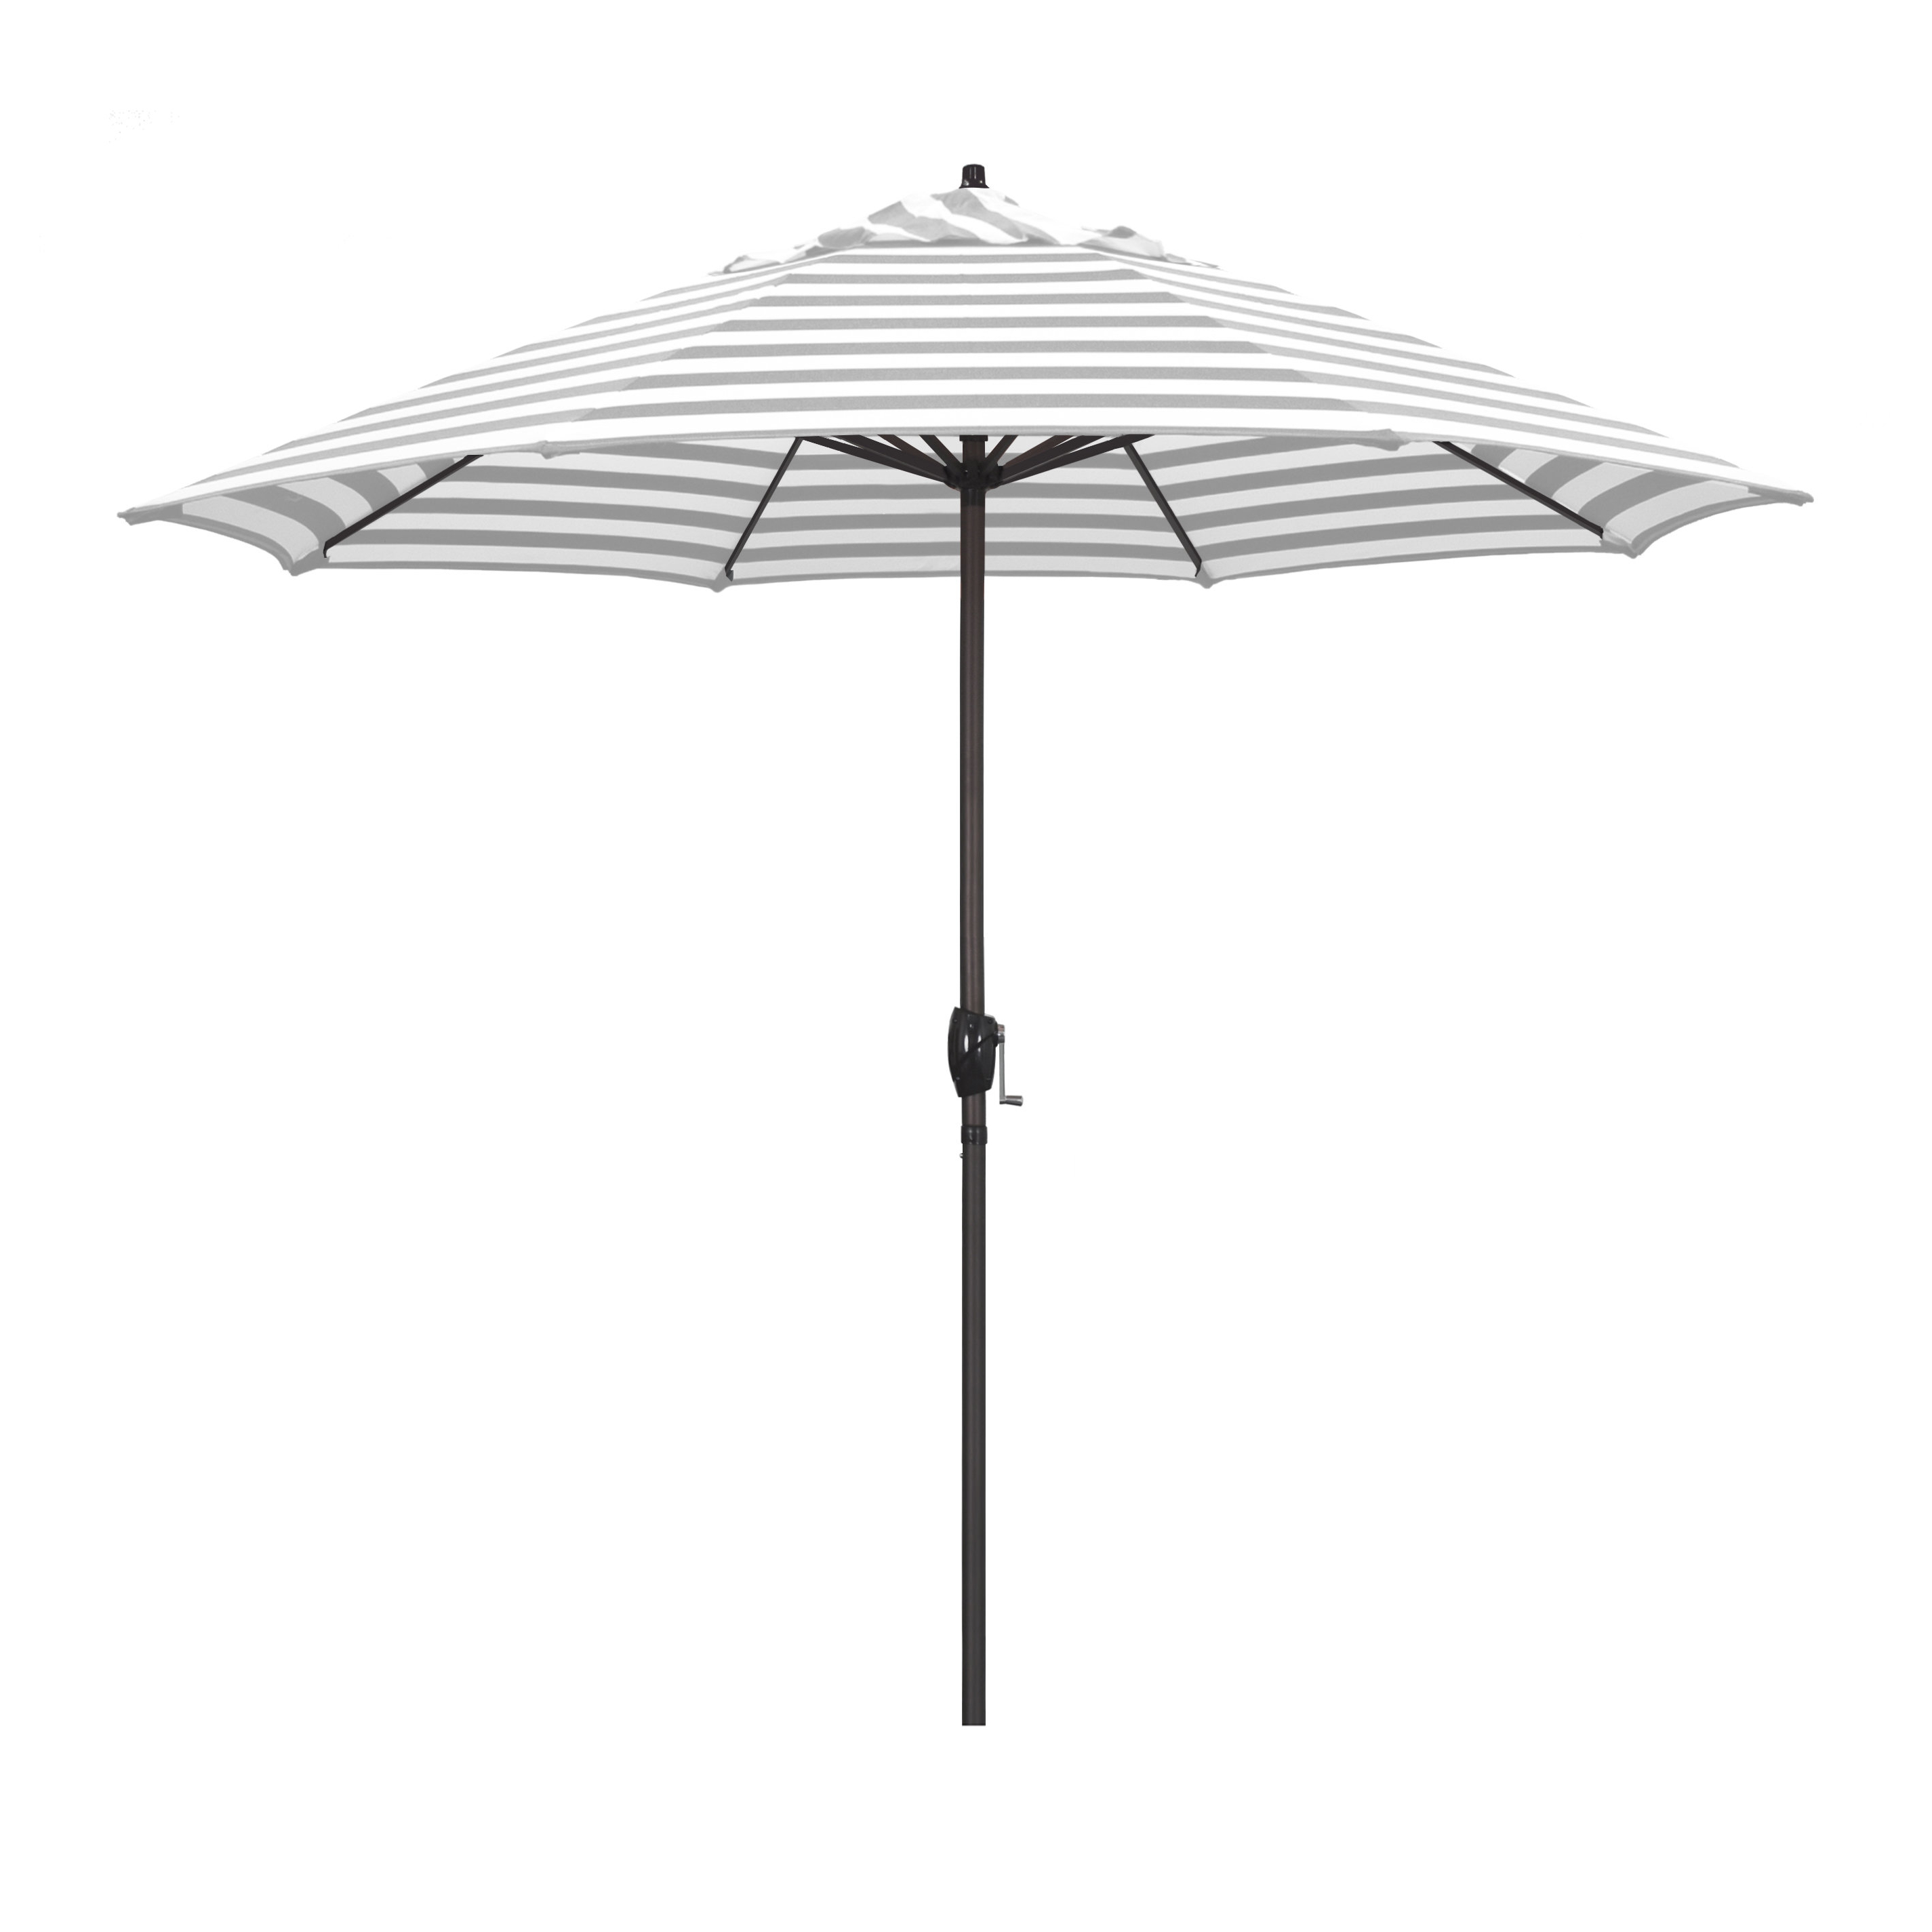 Cardine 9' Market Umbrella Within 2020 Mucci Madilyn Market Sunbrella Umbrellas (View 7 of 20)